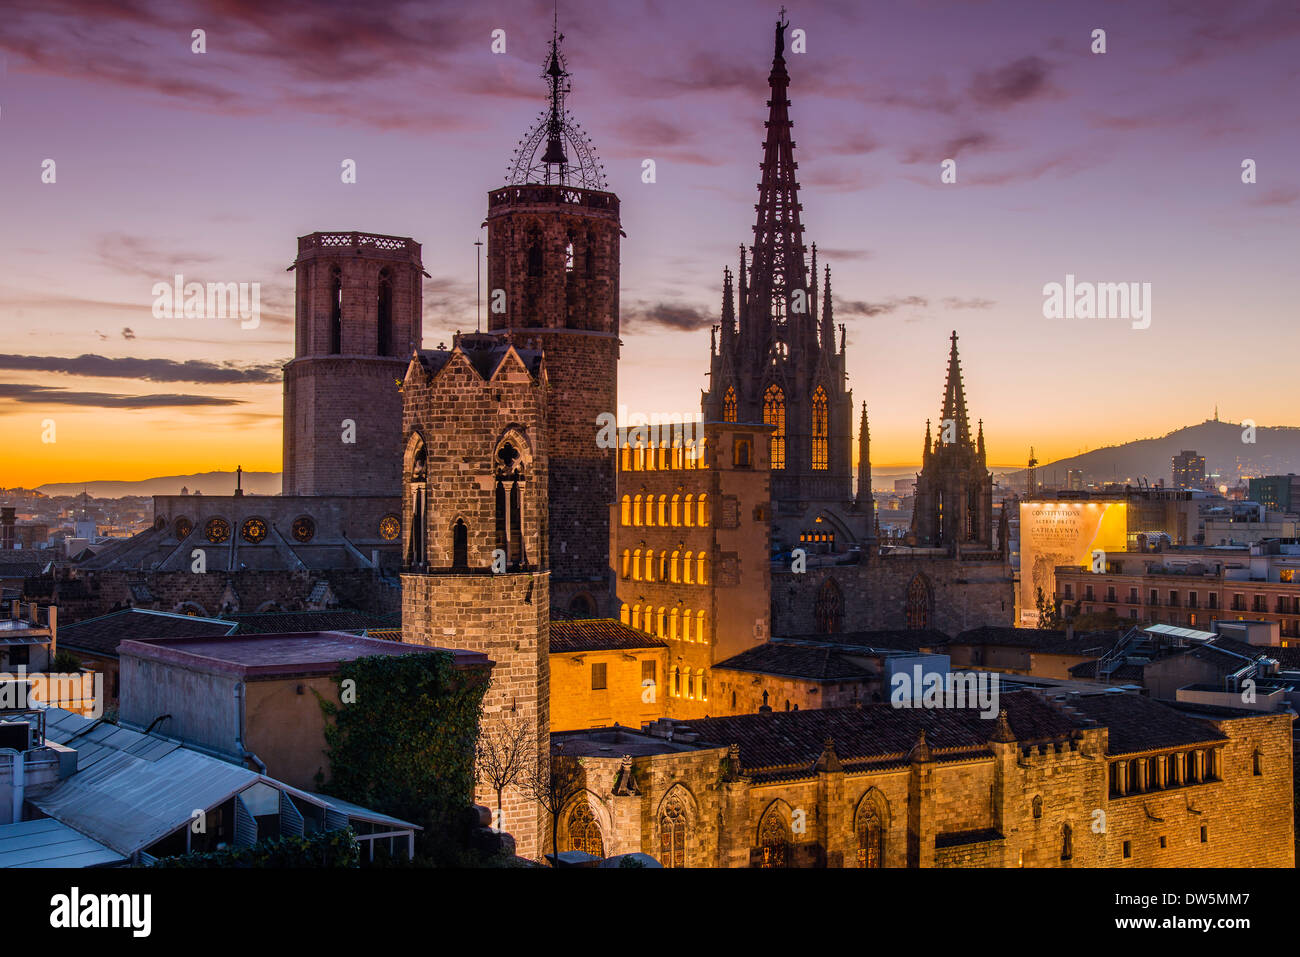 Barri Gotic skyline at sunset with Cathedral of the Holy Cross and Saint Eulalia, Barcelona, Catalonia, Spain - Stock Image